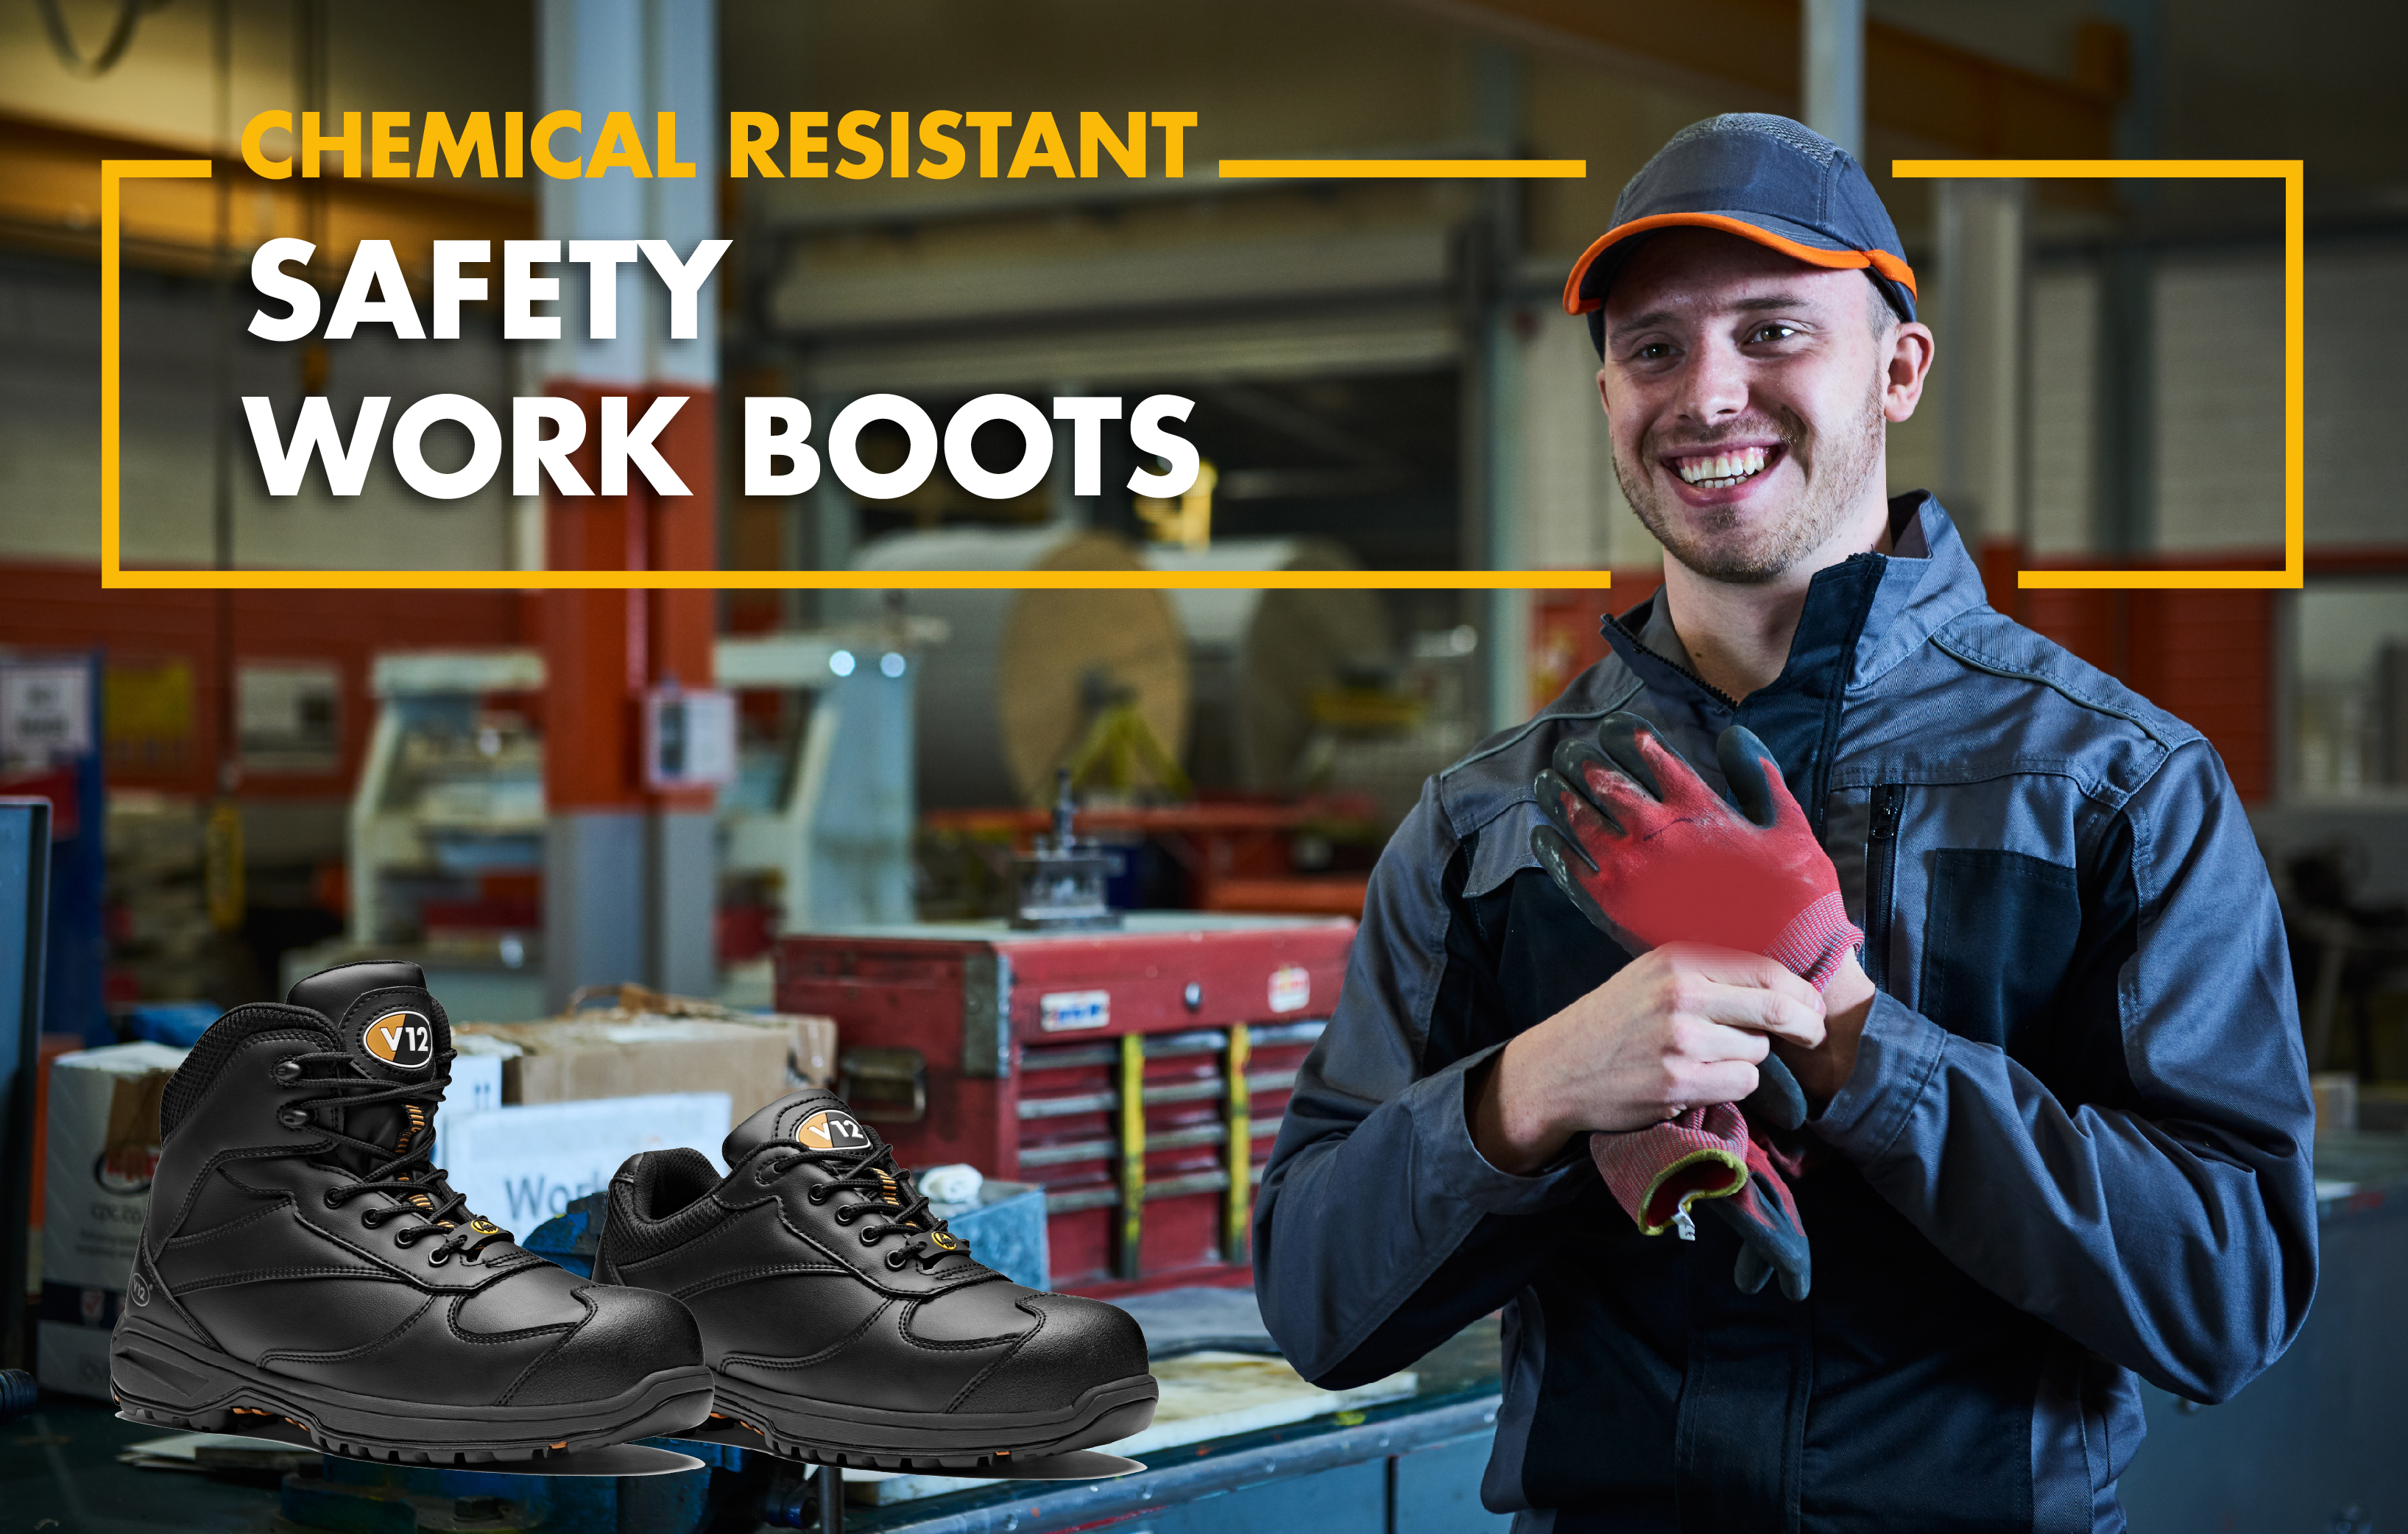 Chemical Resistant Safety Work Boots | V12 Footwear